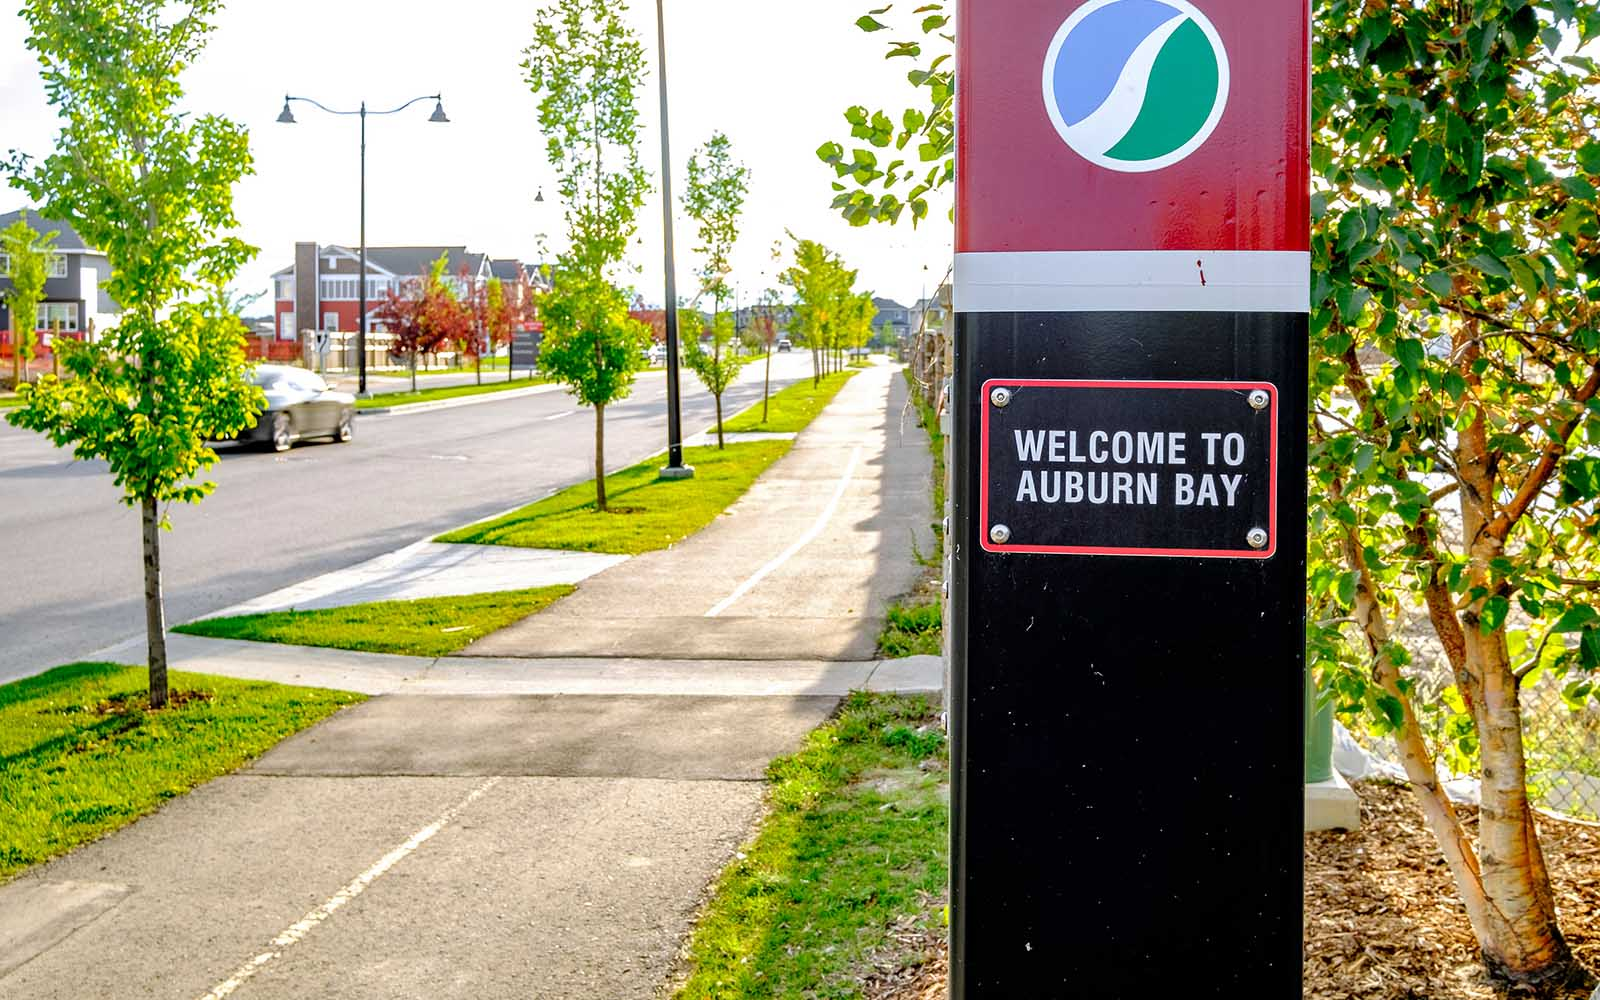 bike-paths-in-auburn-bay-calgary-alberta